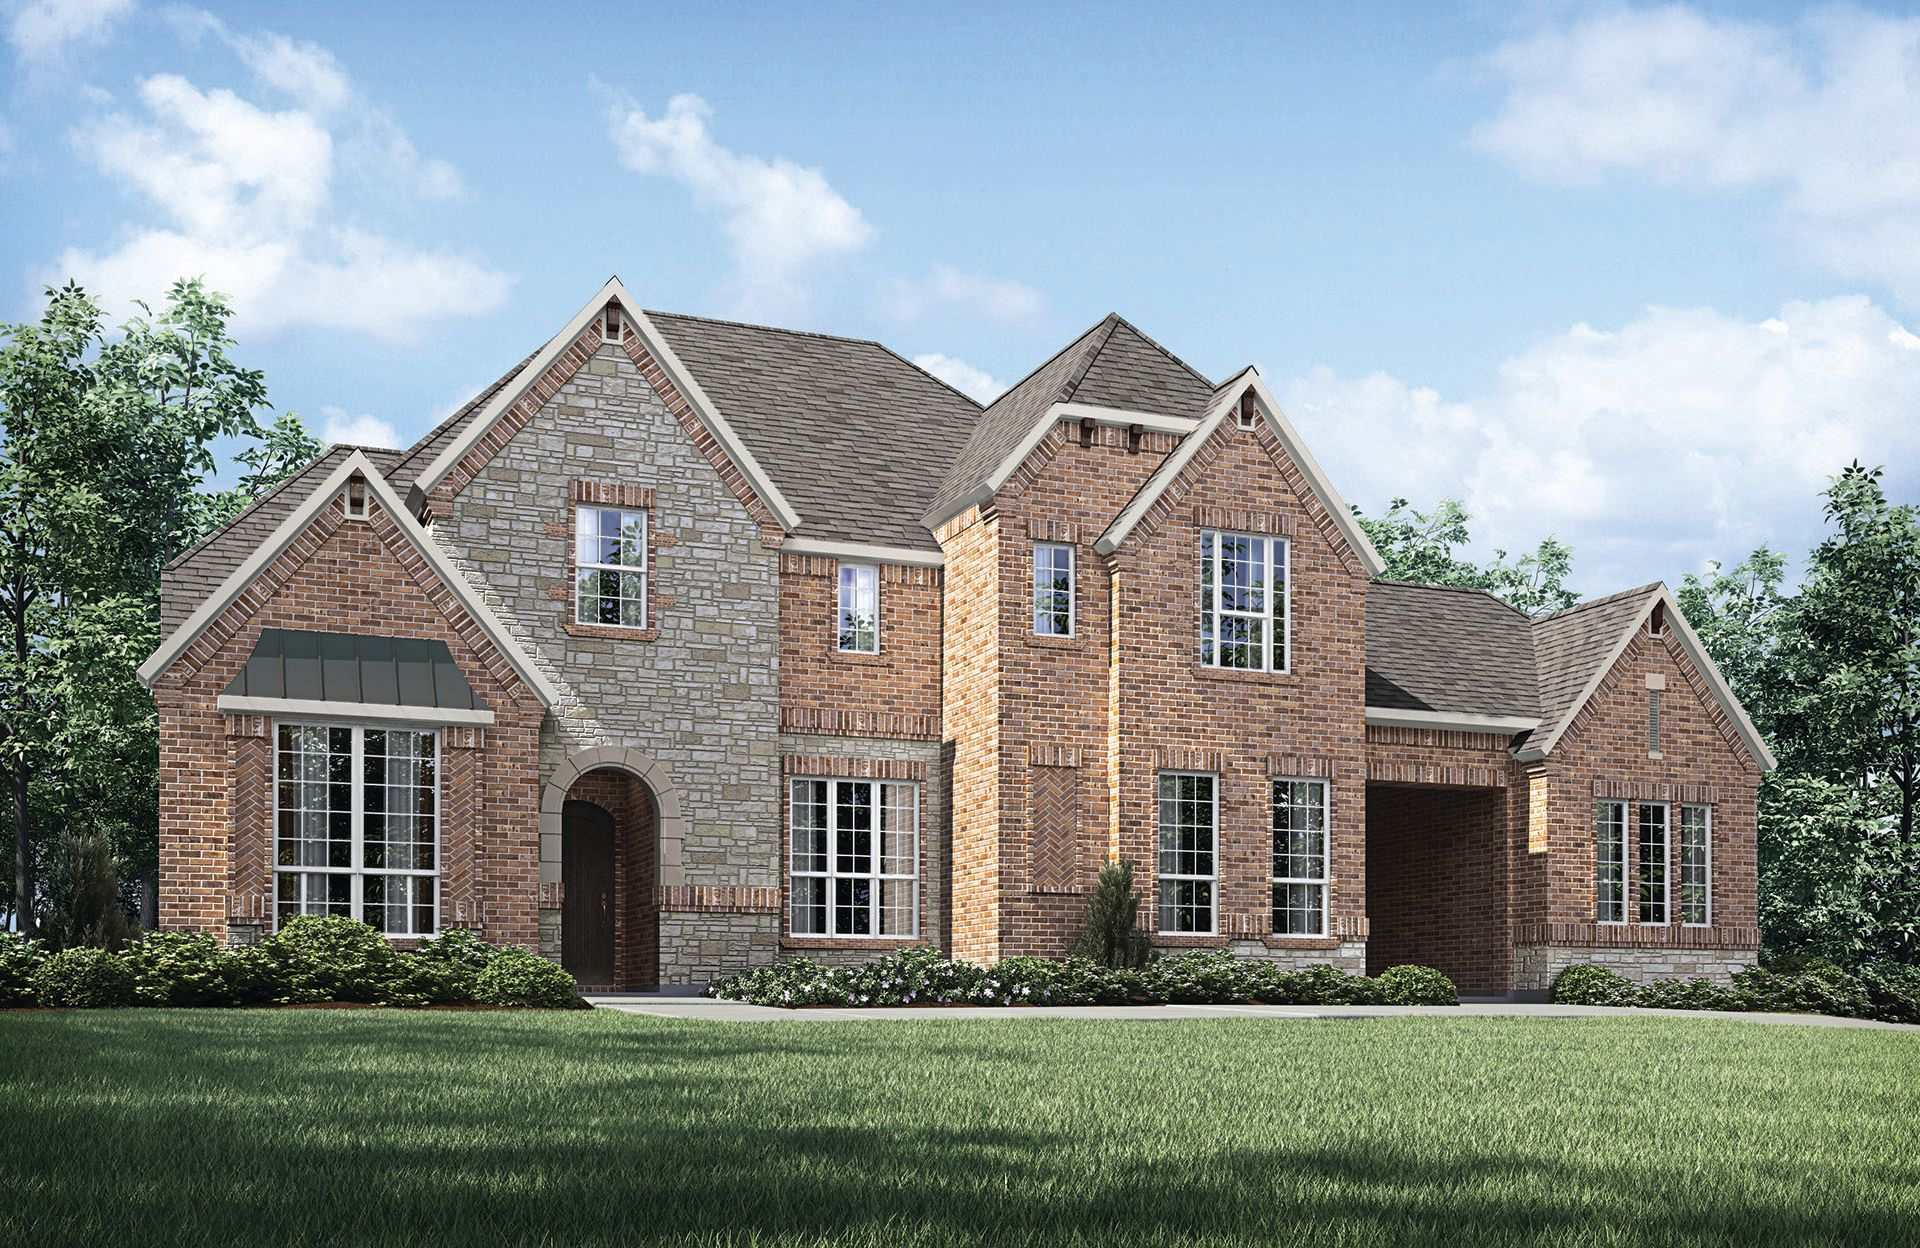 Single Family for Sale at Breezy Hill - Appleton 795 Featherstone Rockwall, Texas 75087 United States